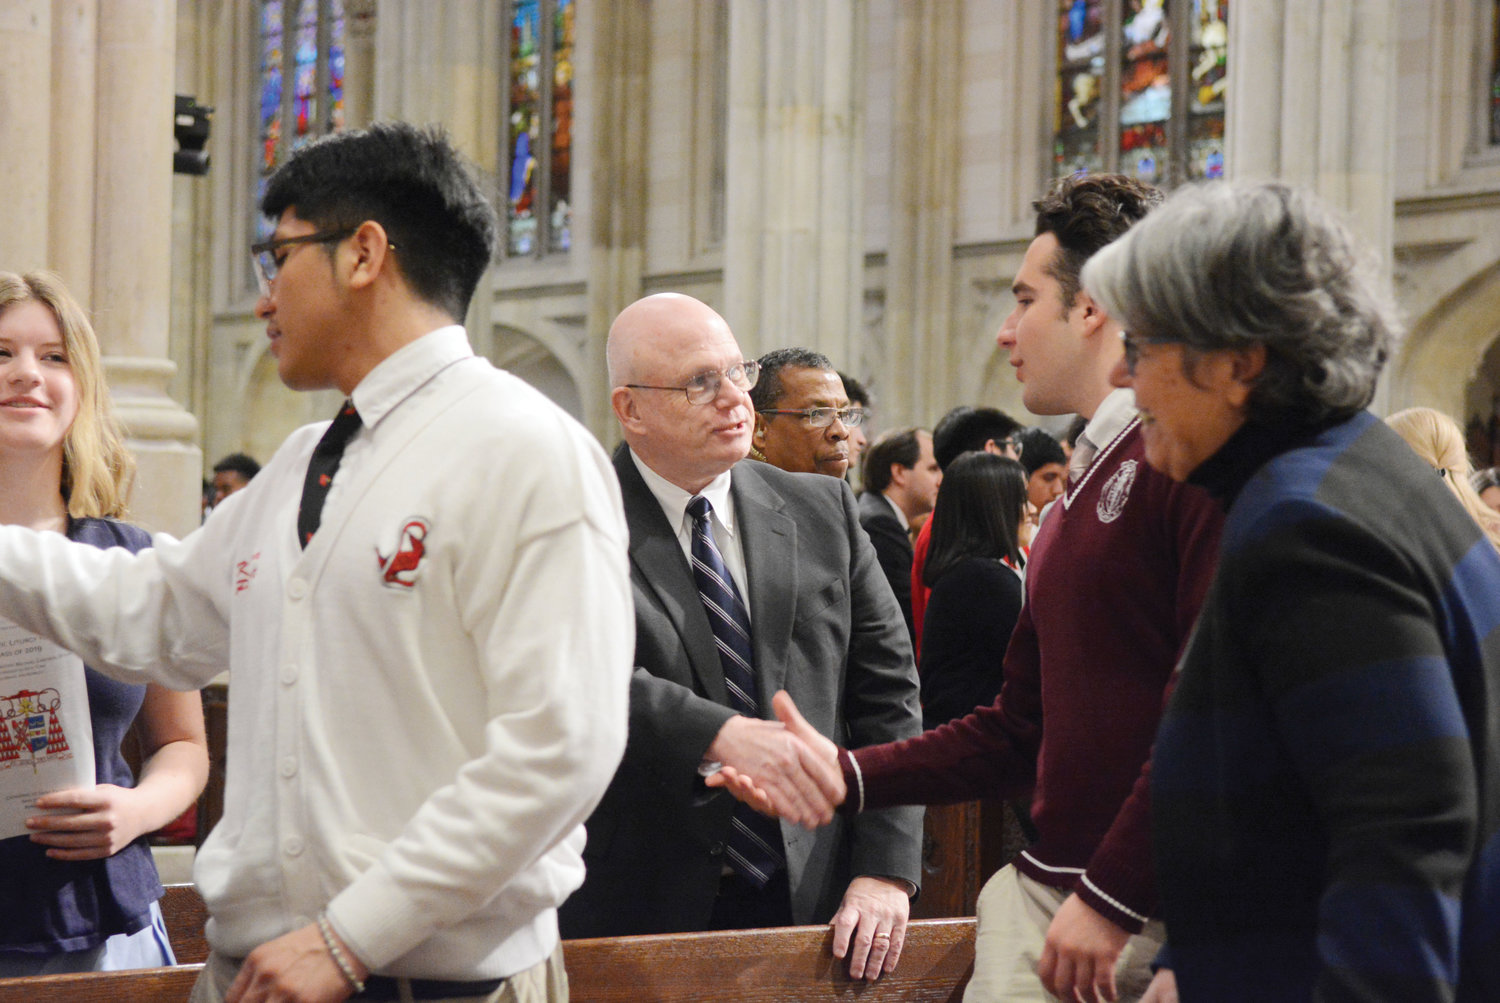 Michael Deegan, interim superintendent of schools for the archdiocese, exchanges the sign of peace with a student at a Mass for high school seniors April 4 at St. Patrick's Cathedral.